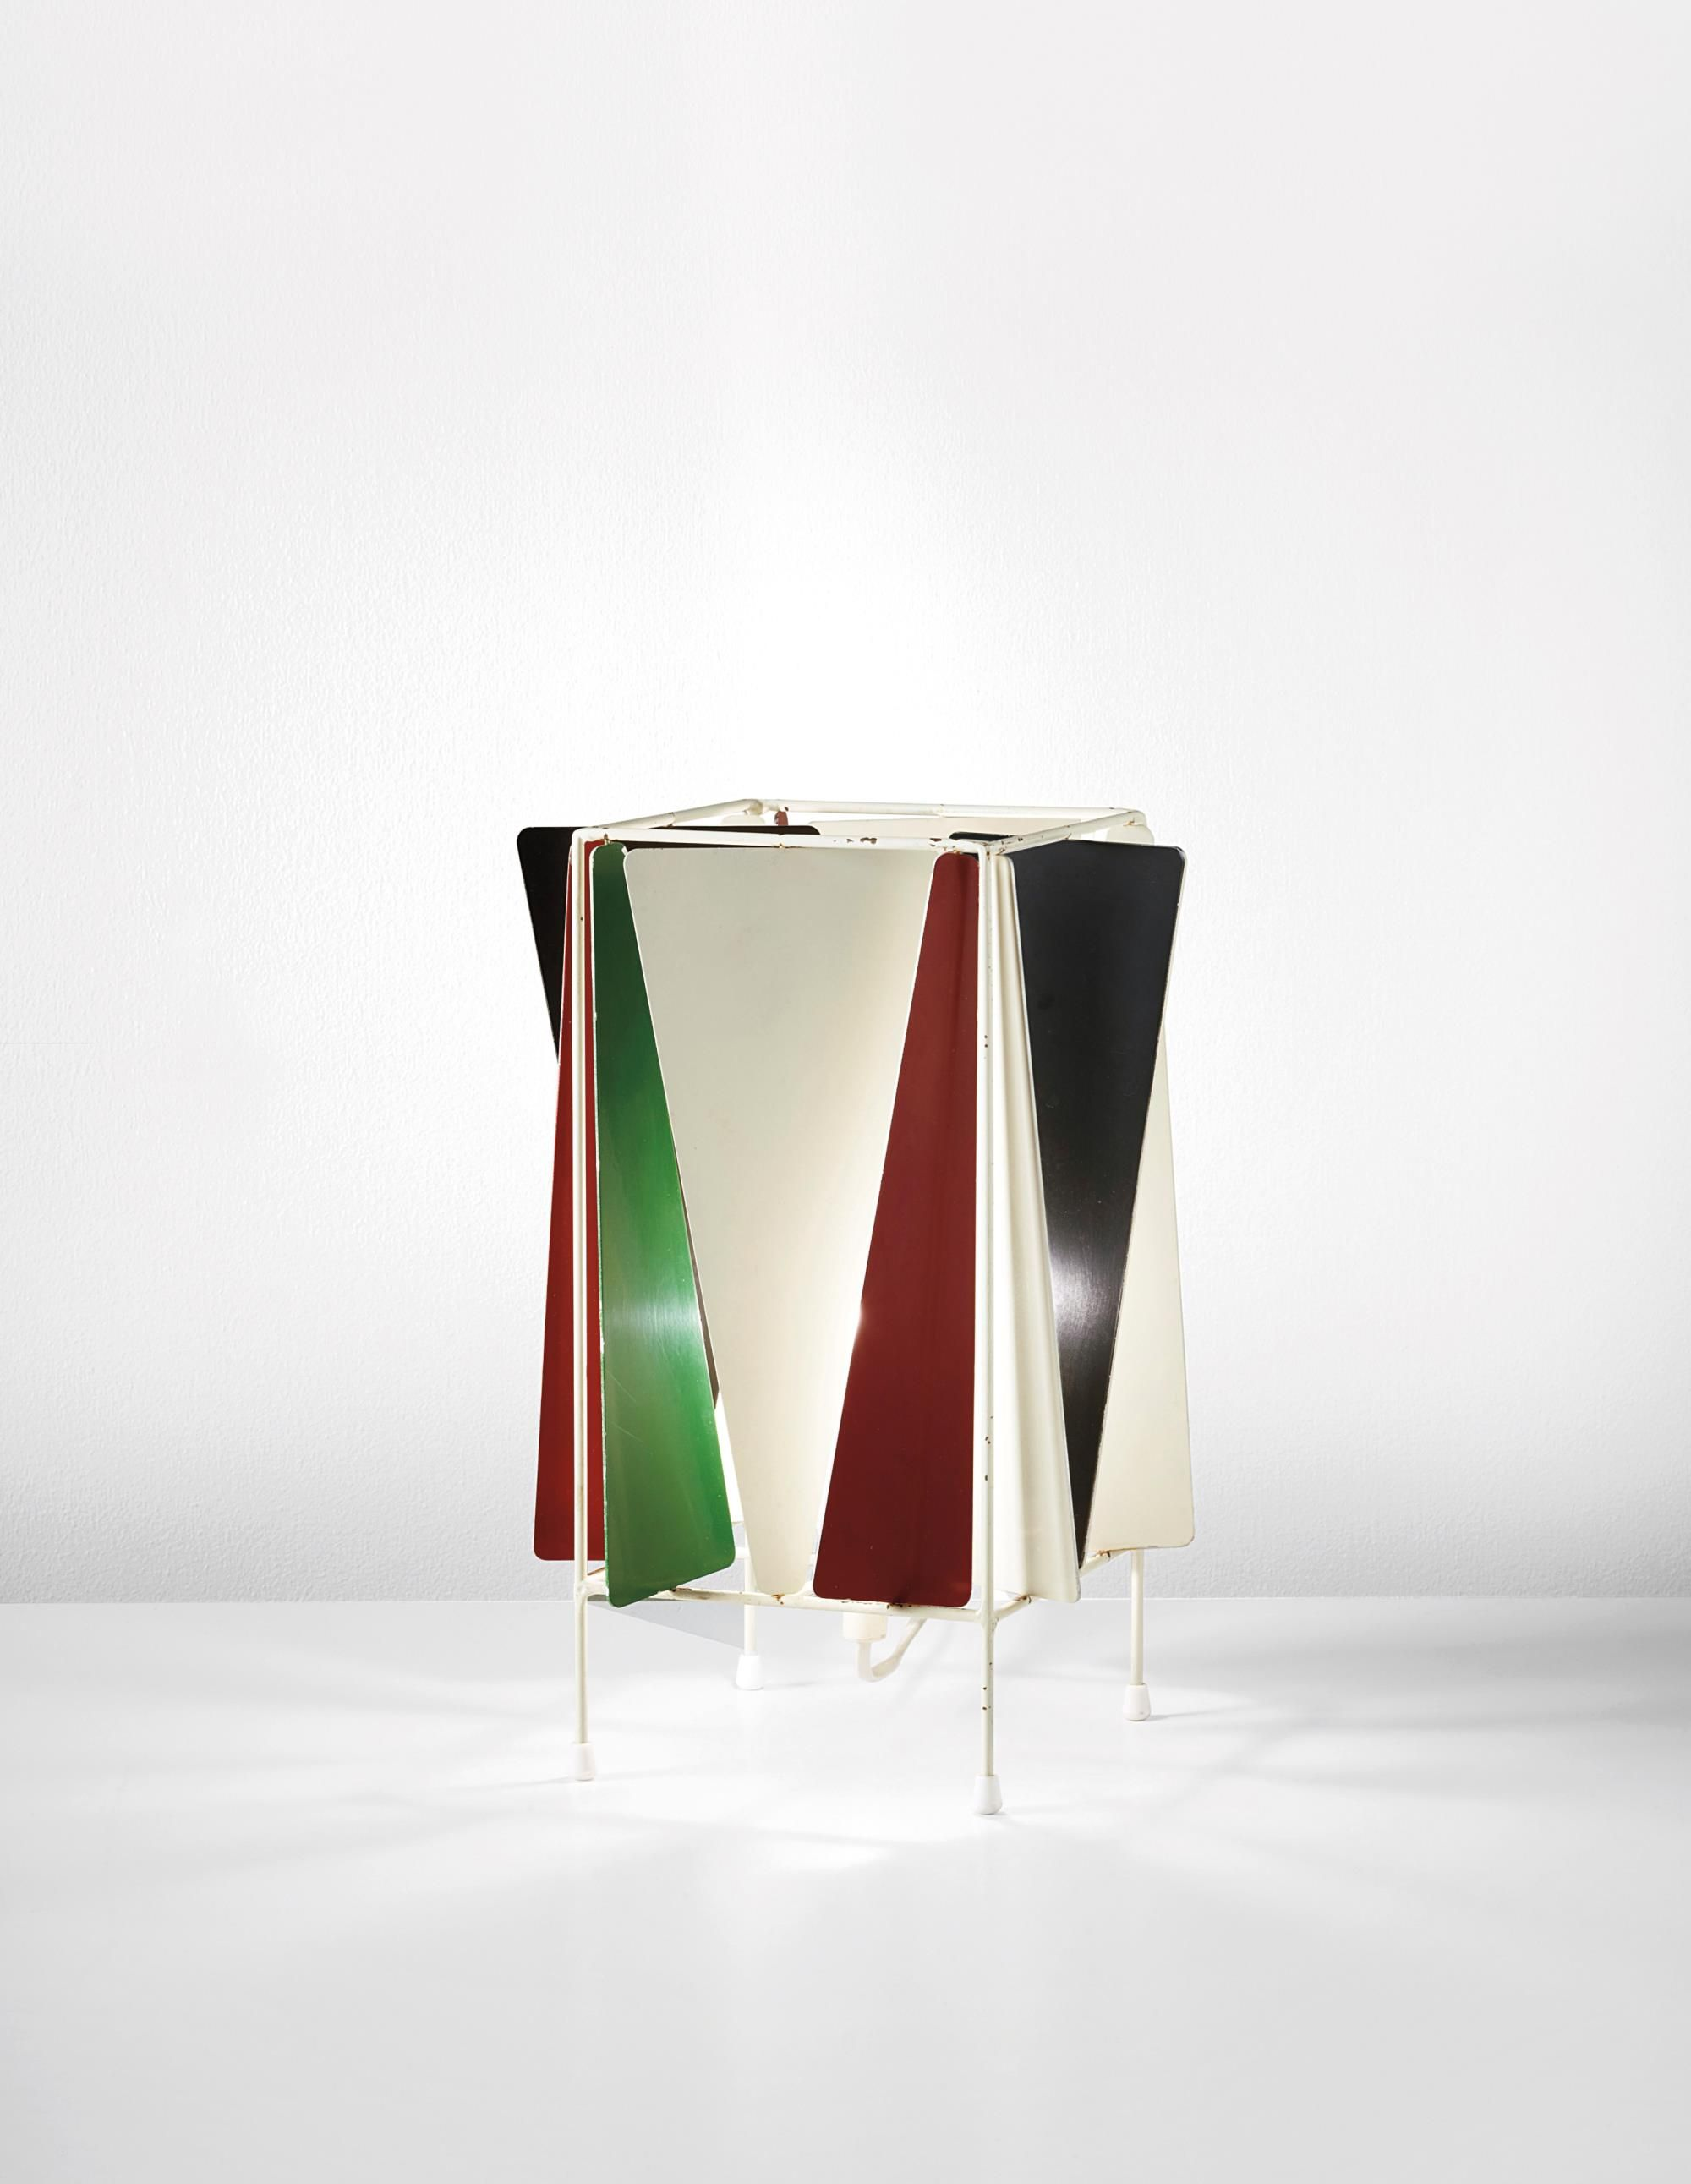 Tag Archived Of Beistelltisch Gold Beistelltisch 30 X Vintage Greta Magnusson Grossman Painted Metal Table Lamp For